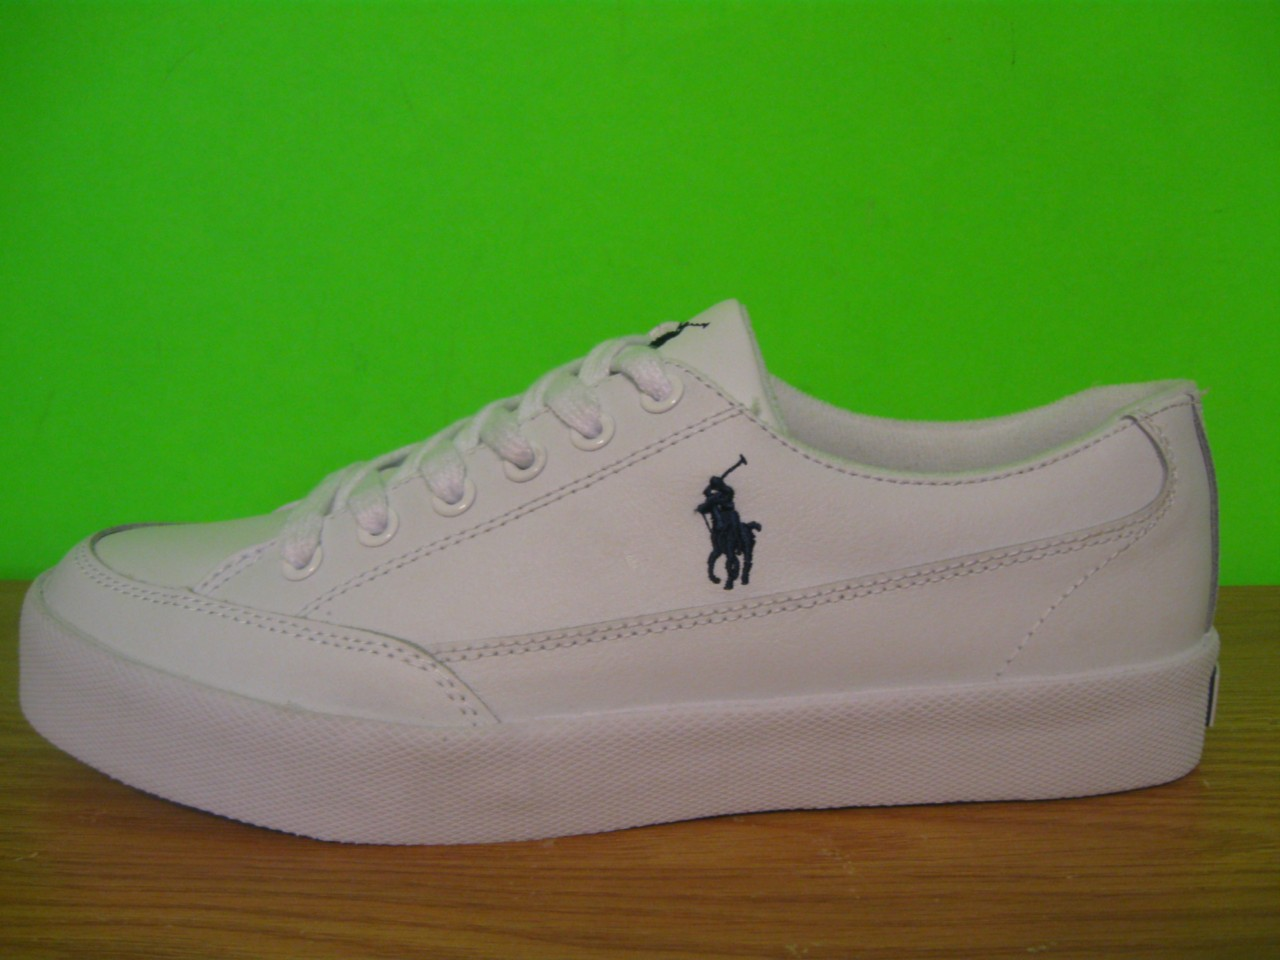 new polo ralph white leather trainers sneakers tennis shoes mens 8 10 5 ebay